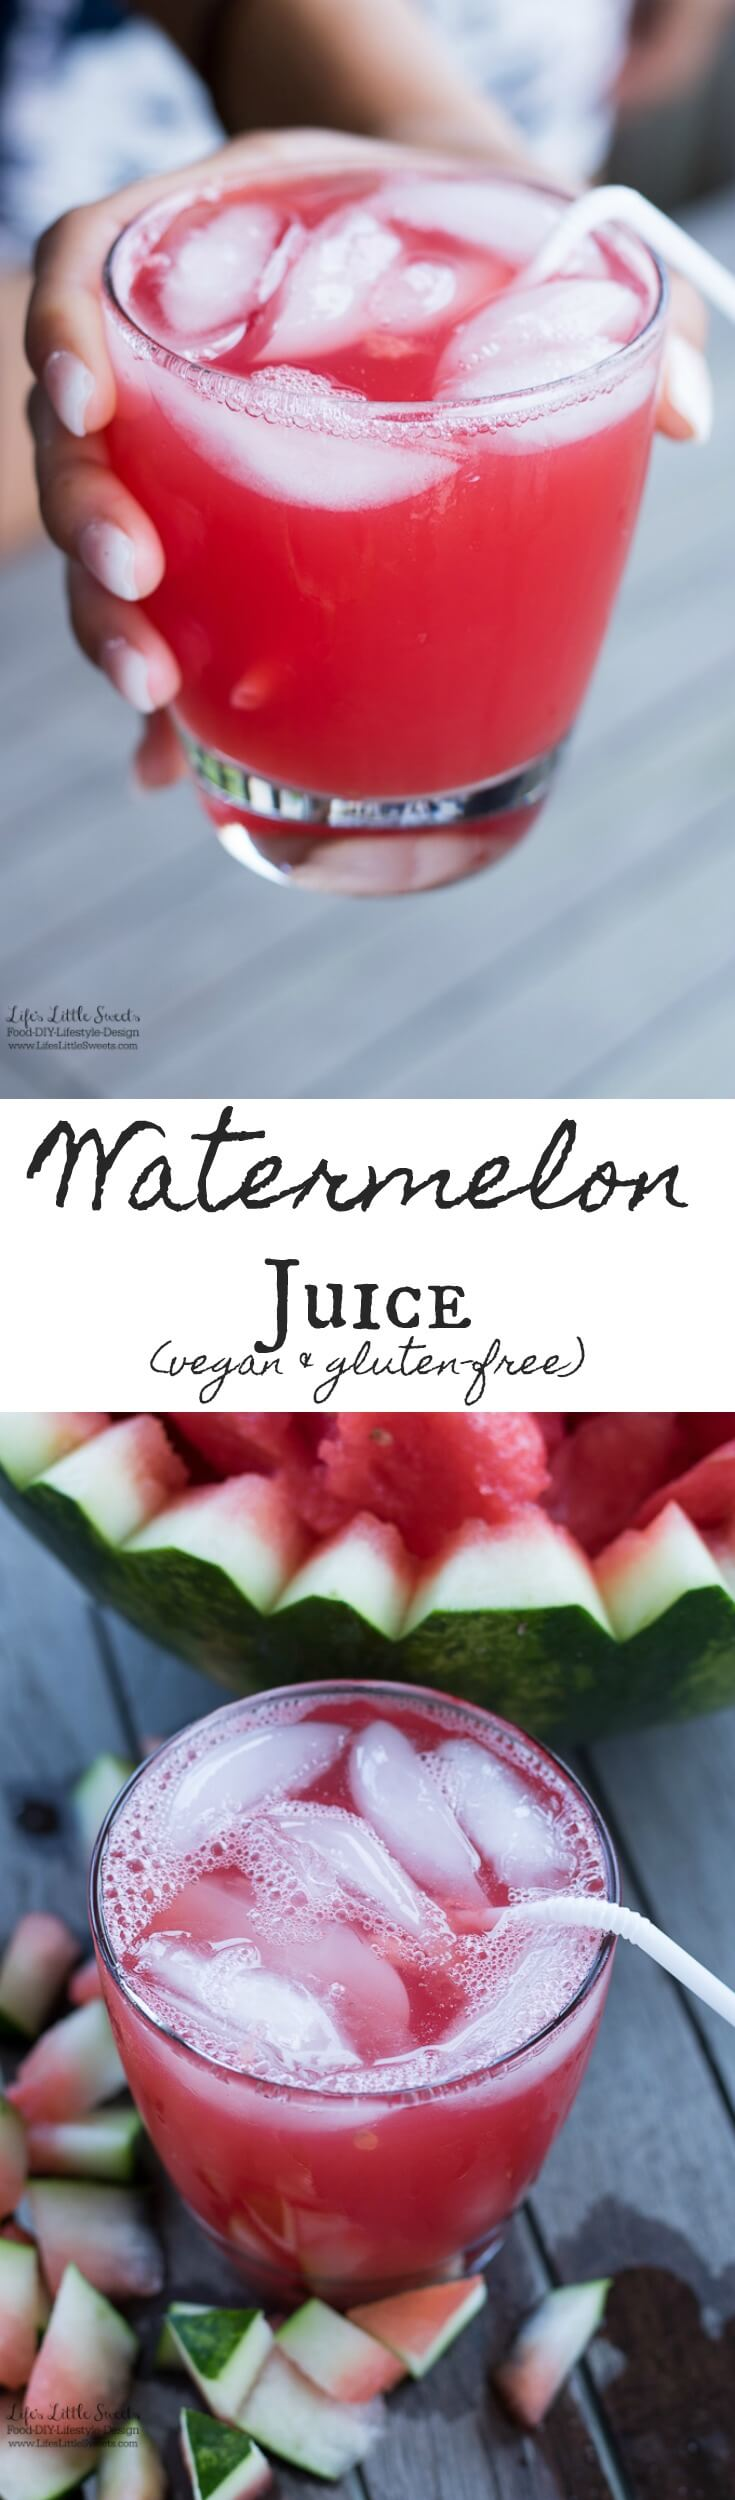 Watermelon Juice is a Summer-y, sweet and hydrating juice. Only 1 ingredient! (vegan, gluten-free) www.lifeslittlesweets.com